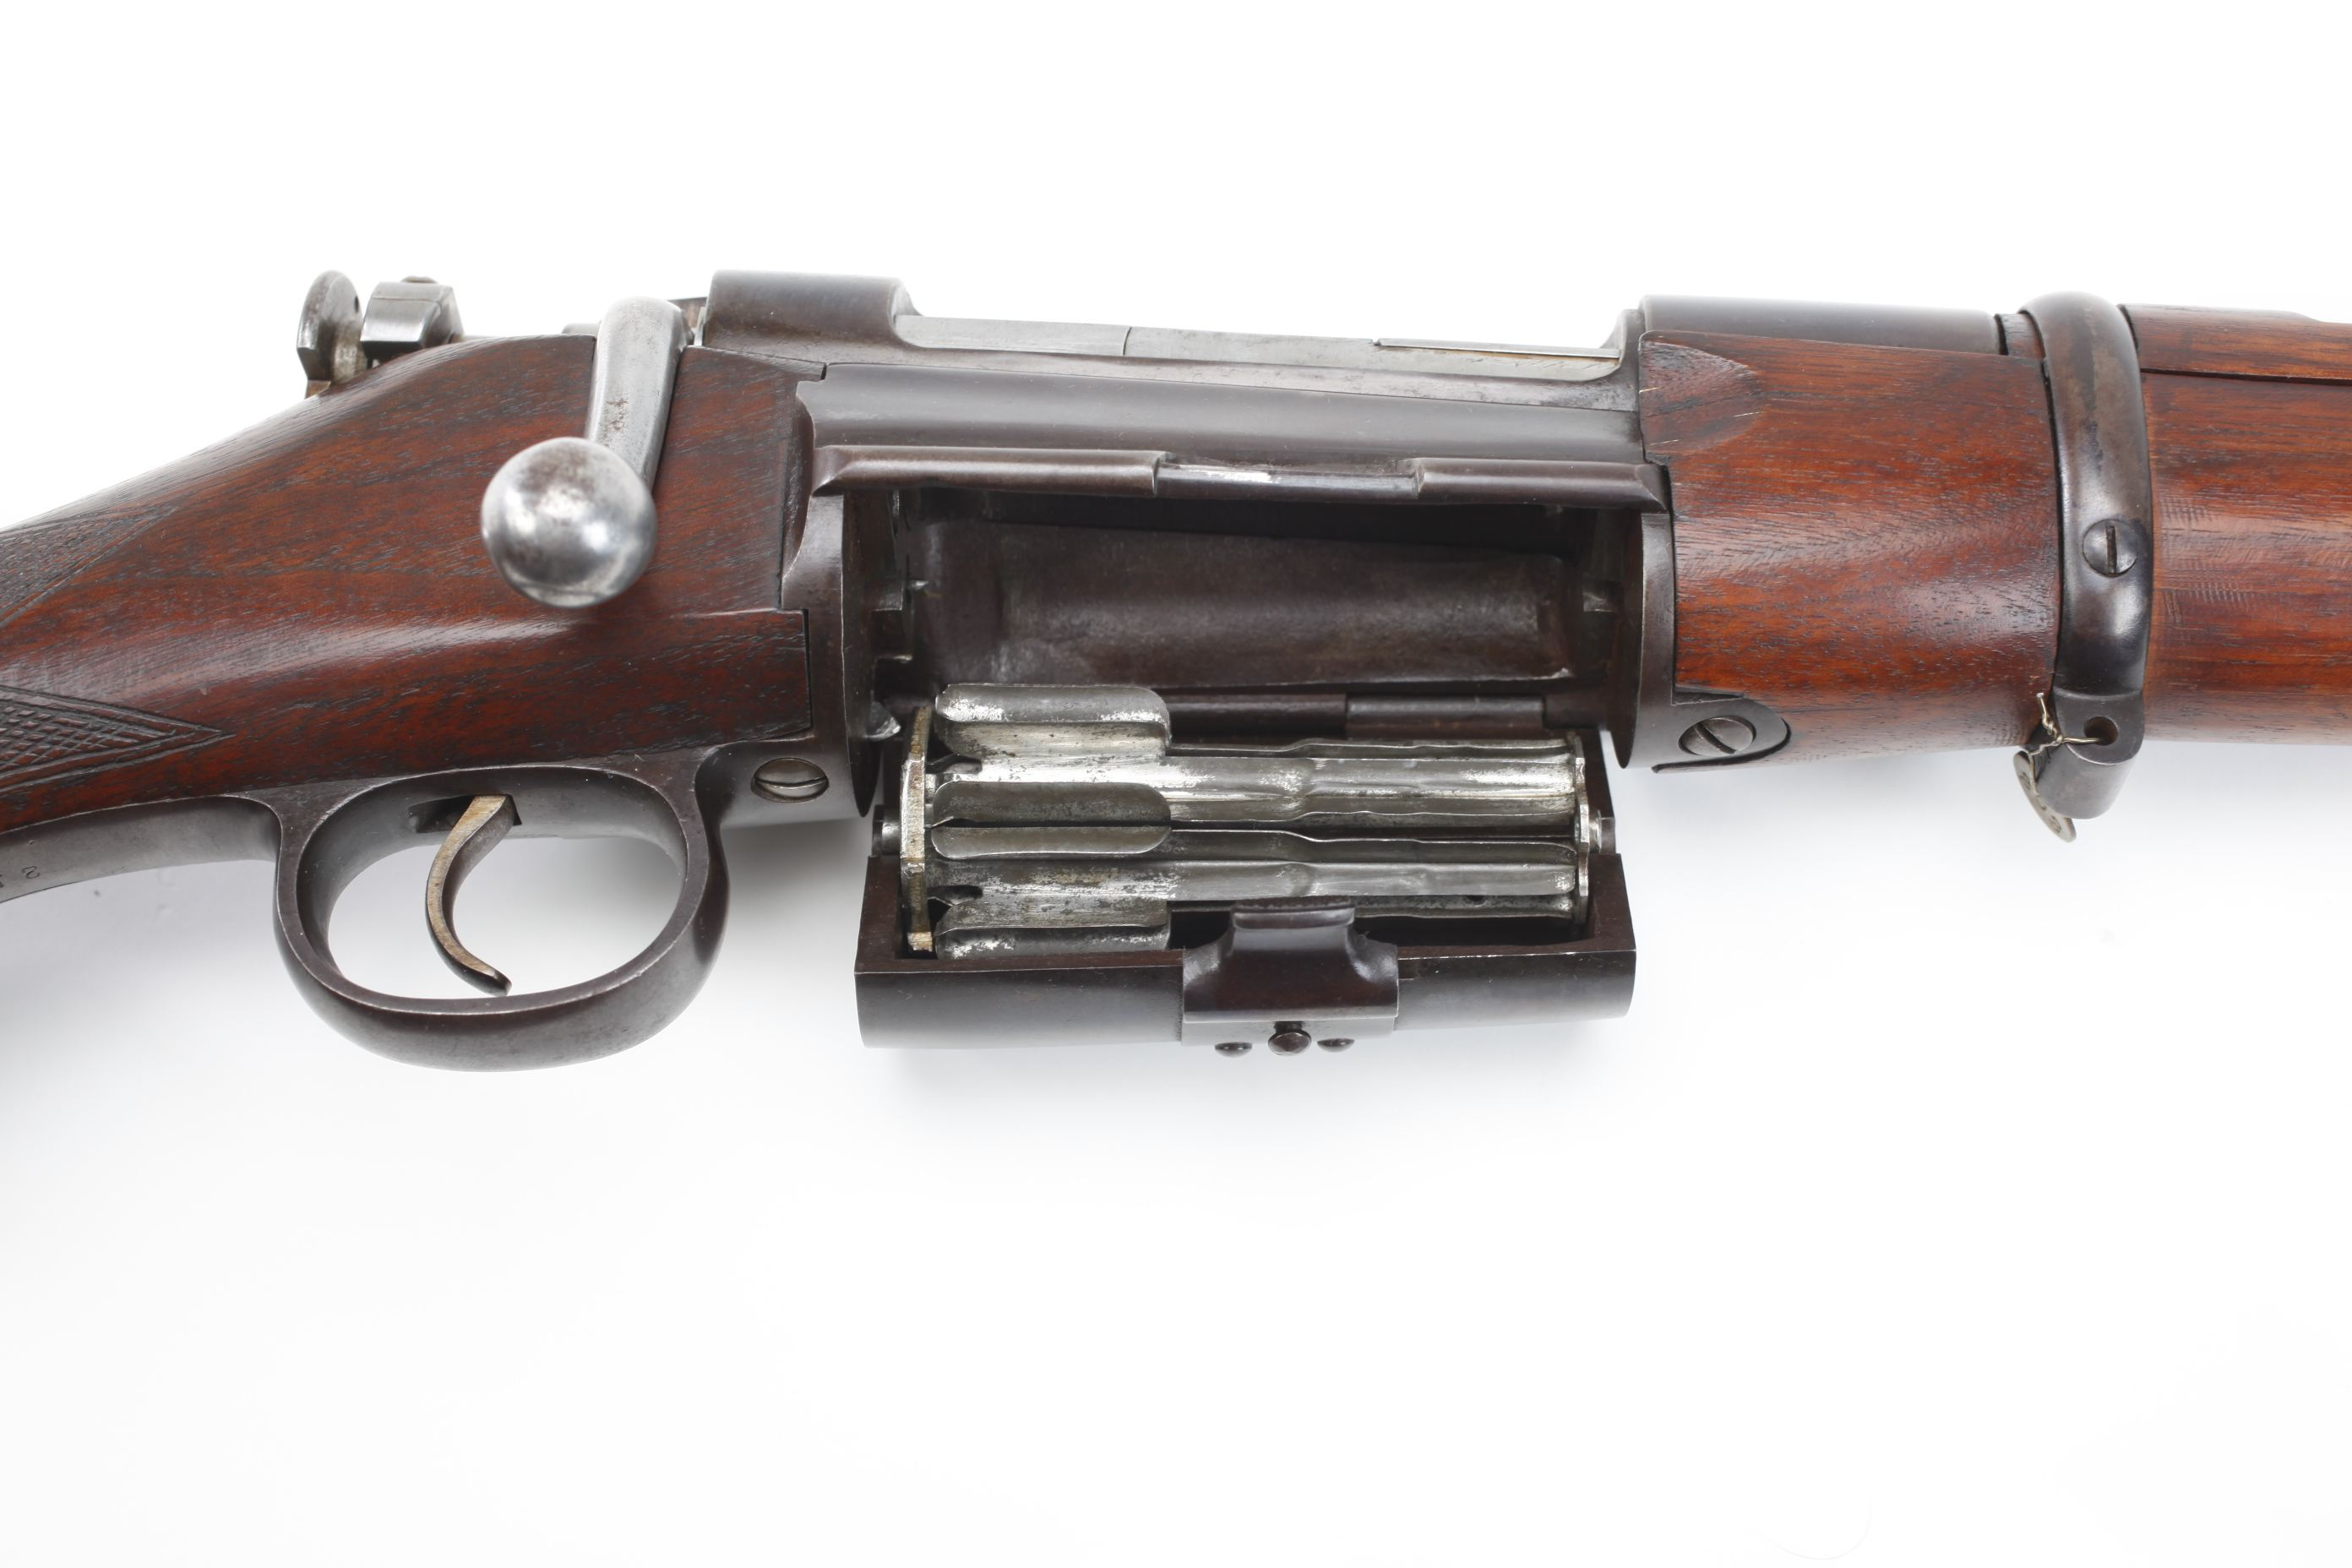 Blake Bolt Action Repeating Rifle